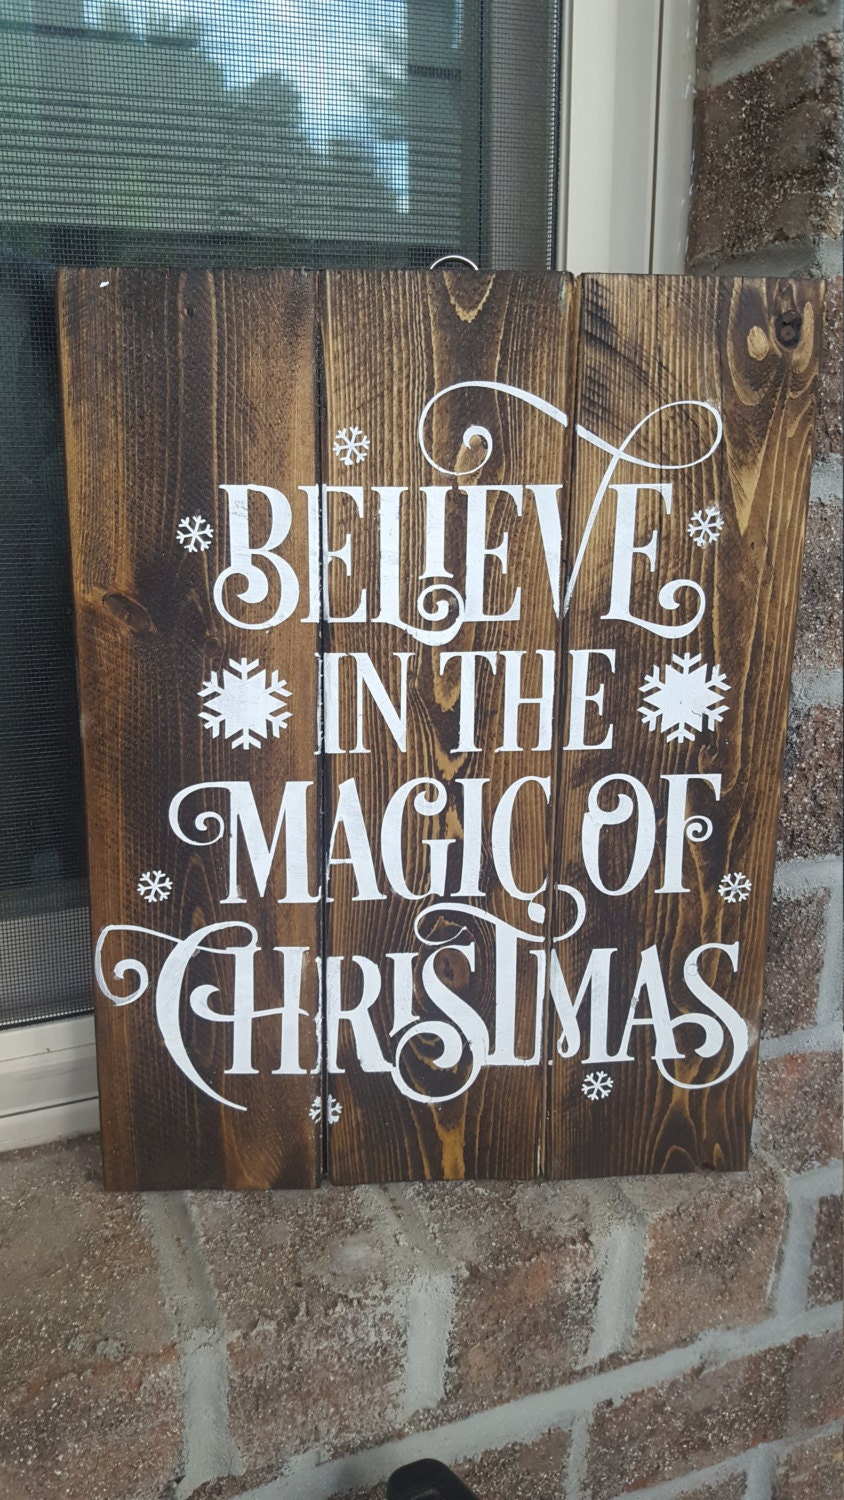 Believe in the magic of christmas sign by